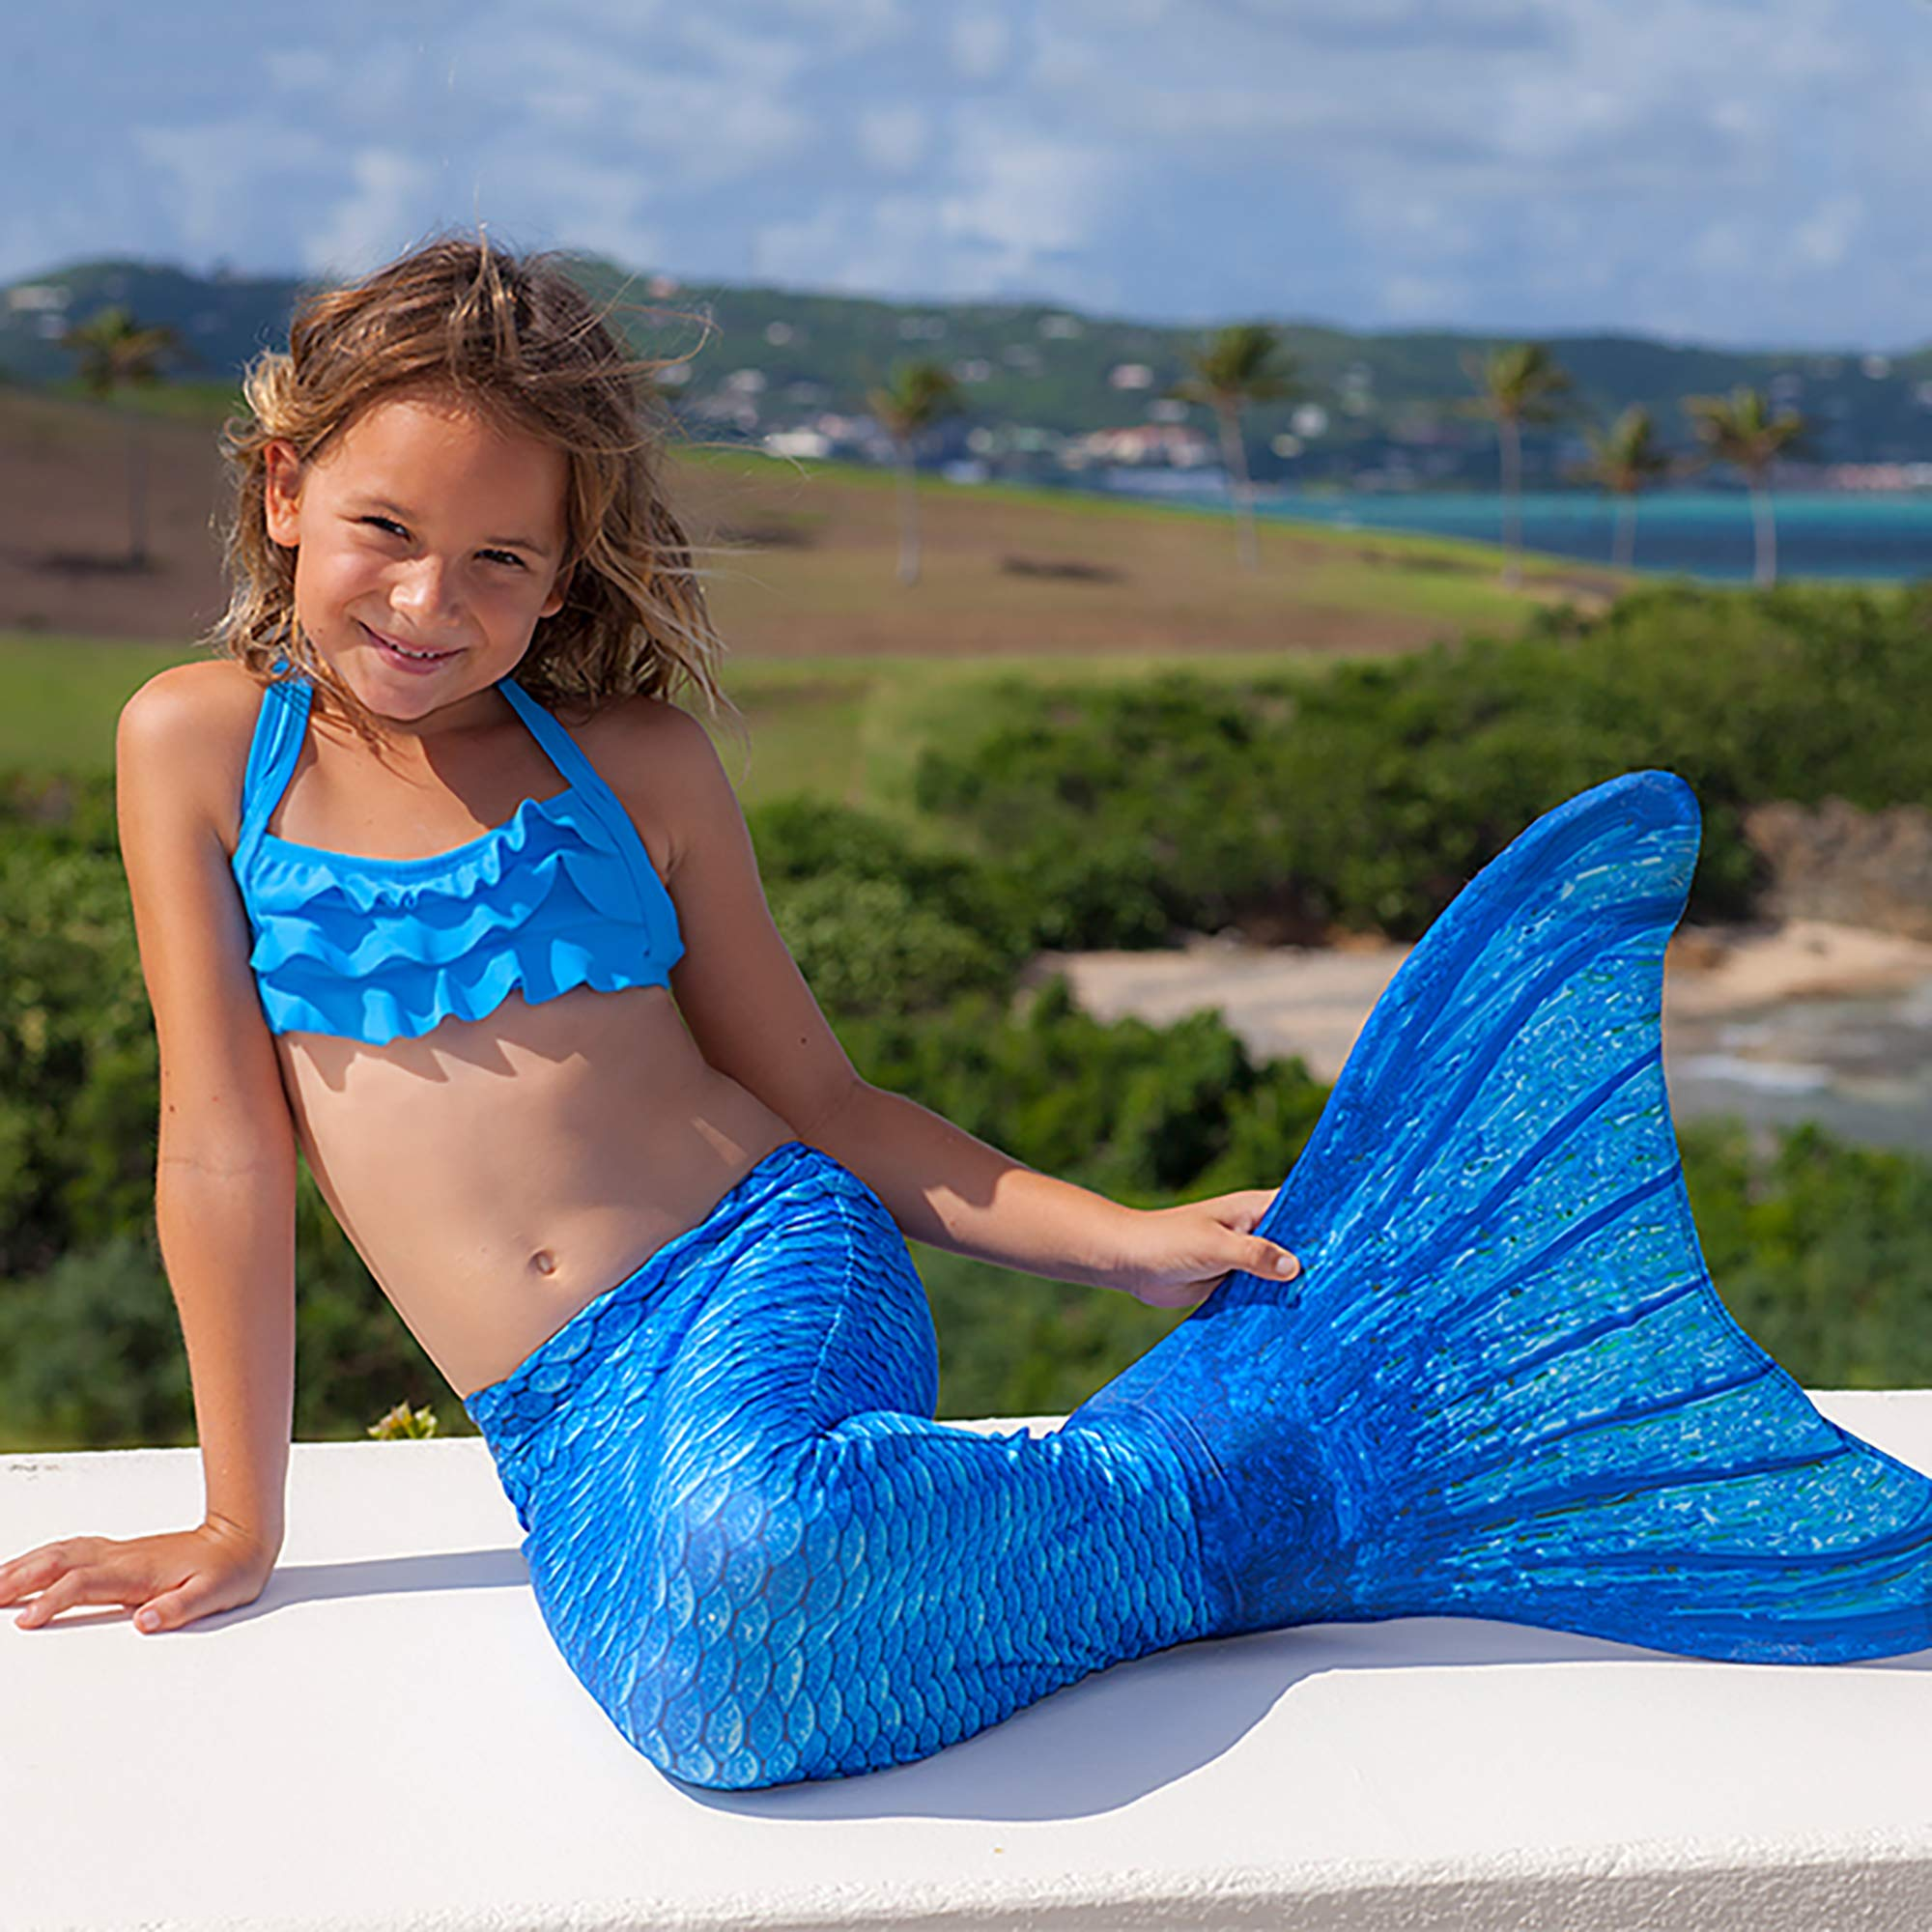 Fin Fun Mermaid Tail Only, Reinforced Tips, NO Monofin, Asian Magenta, Size Child 10 by Fin Fun (Image #7)